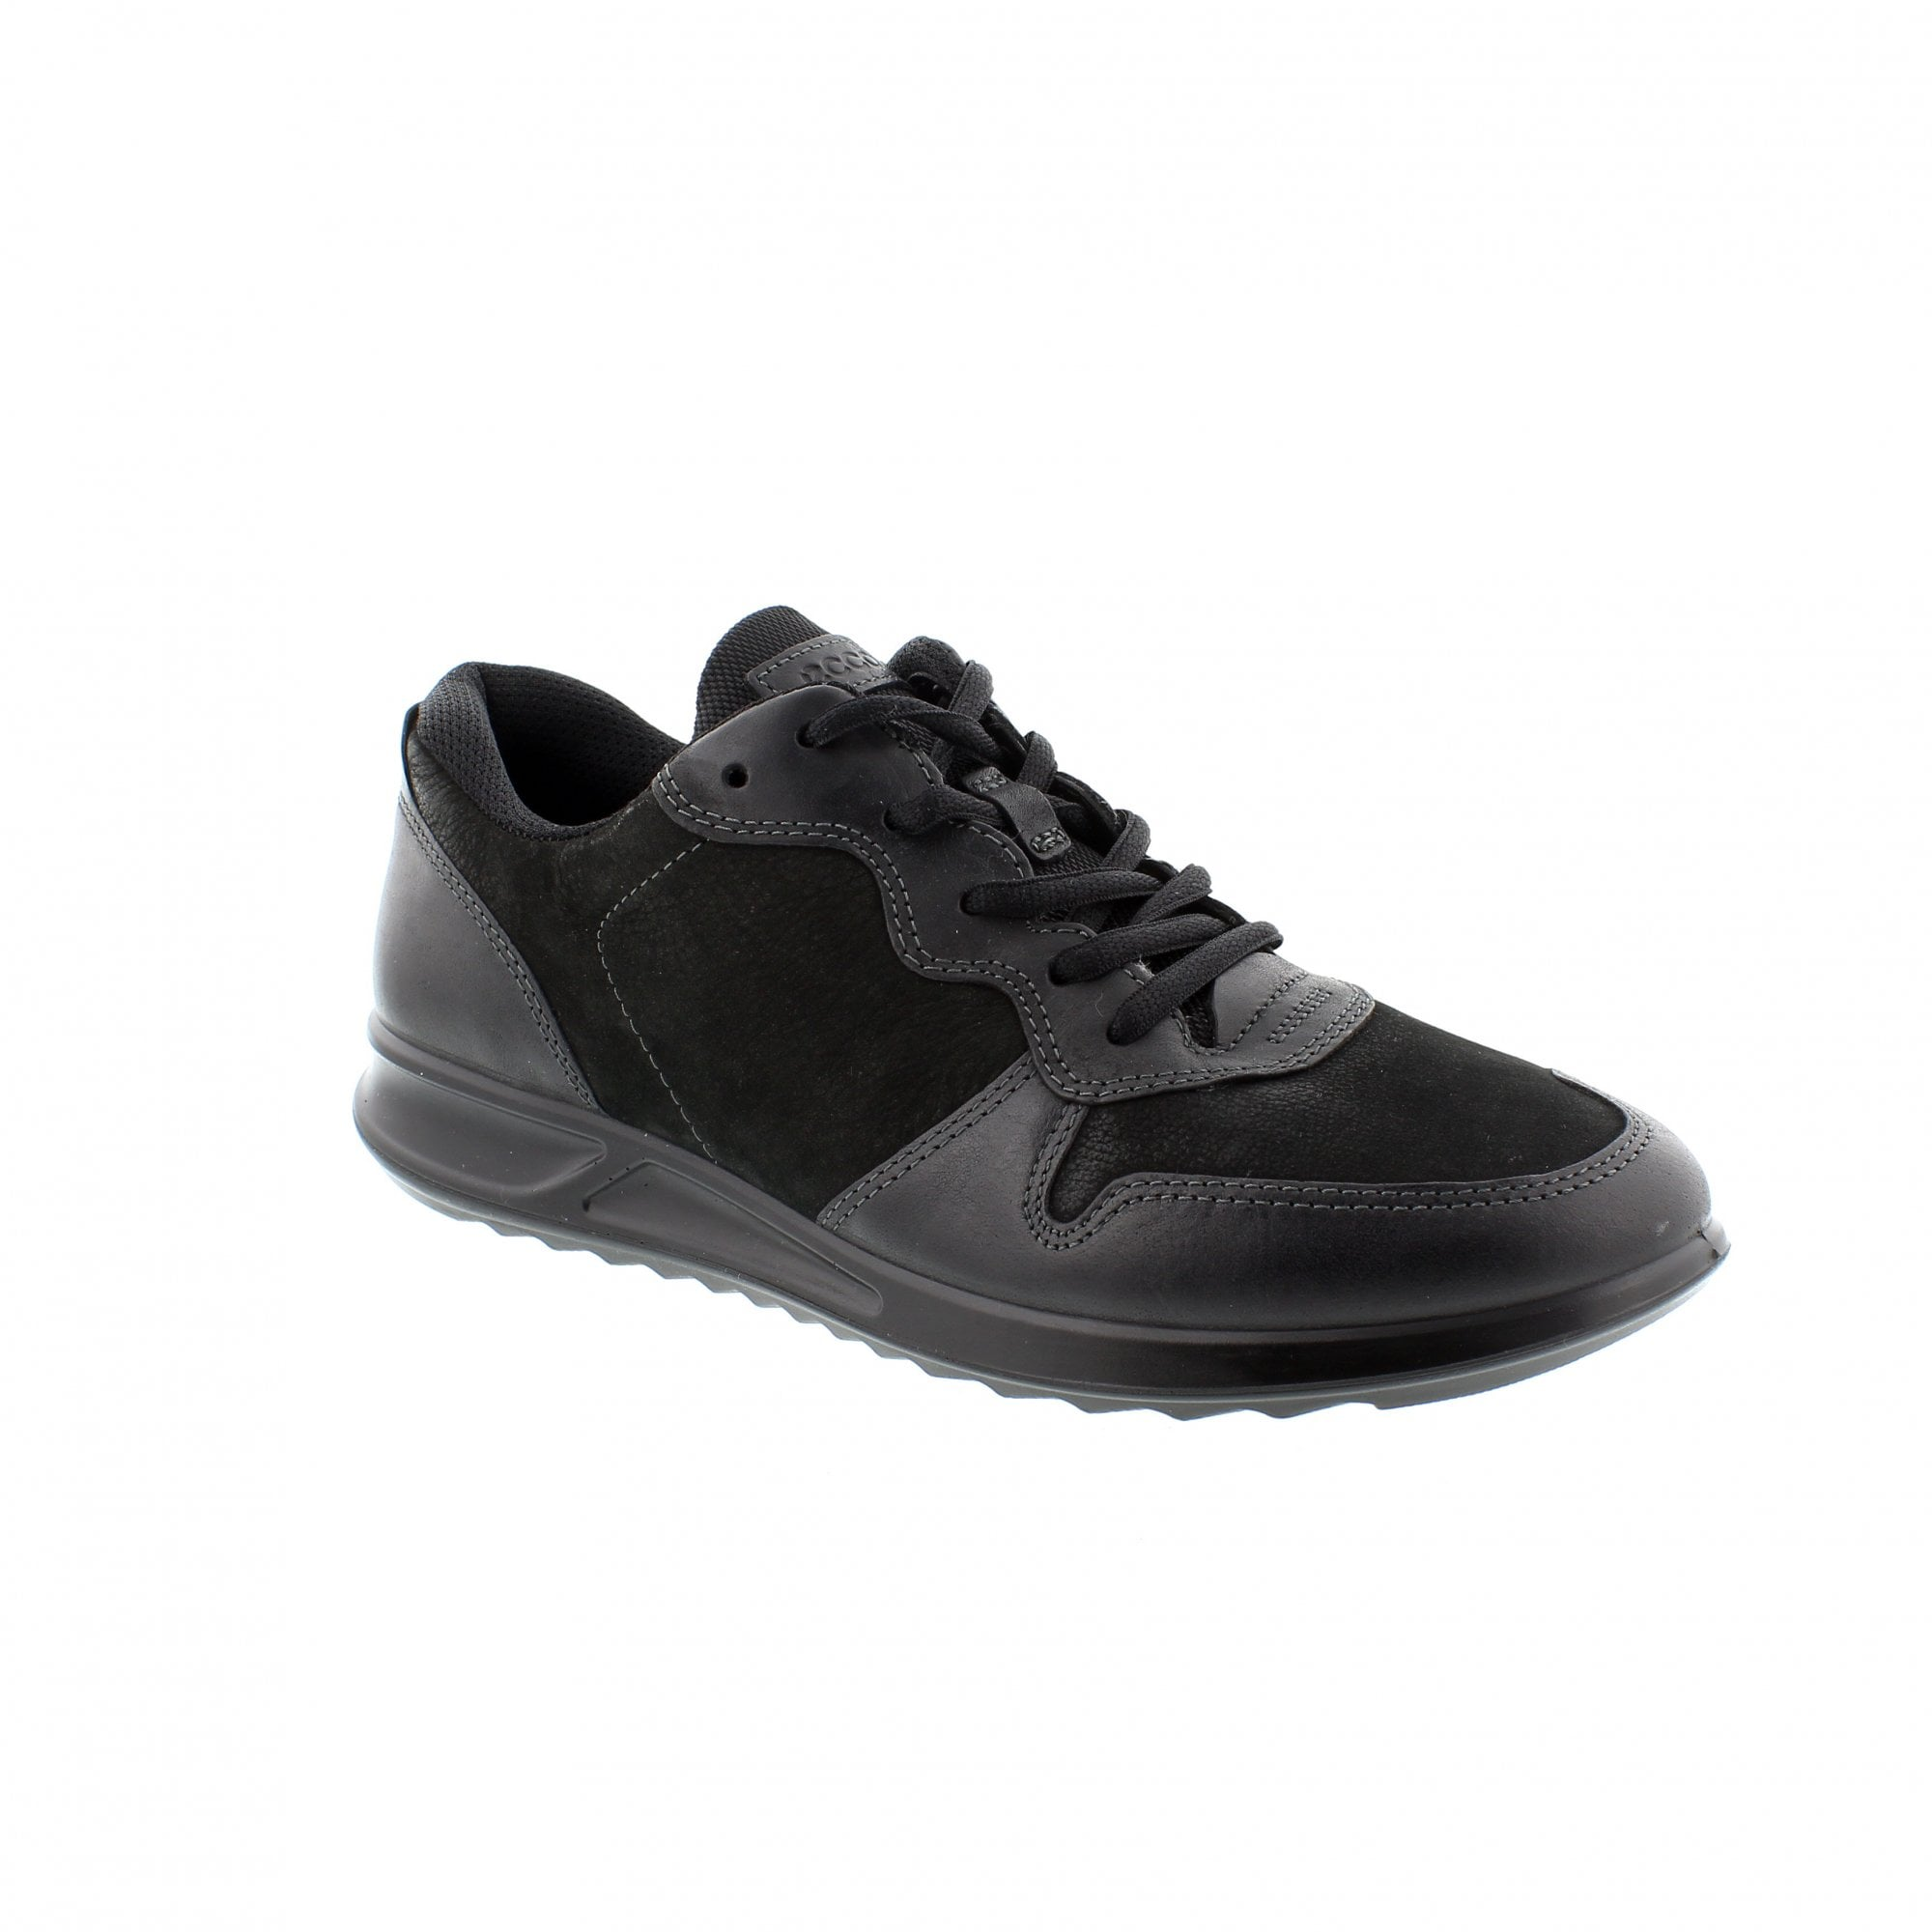 Ecco Genna   283633-53859 - Womens from